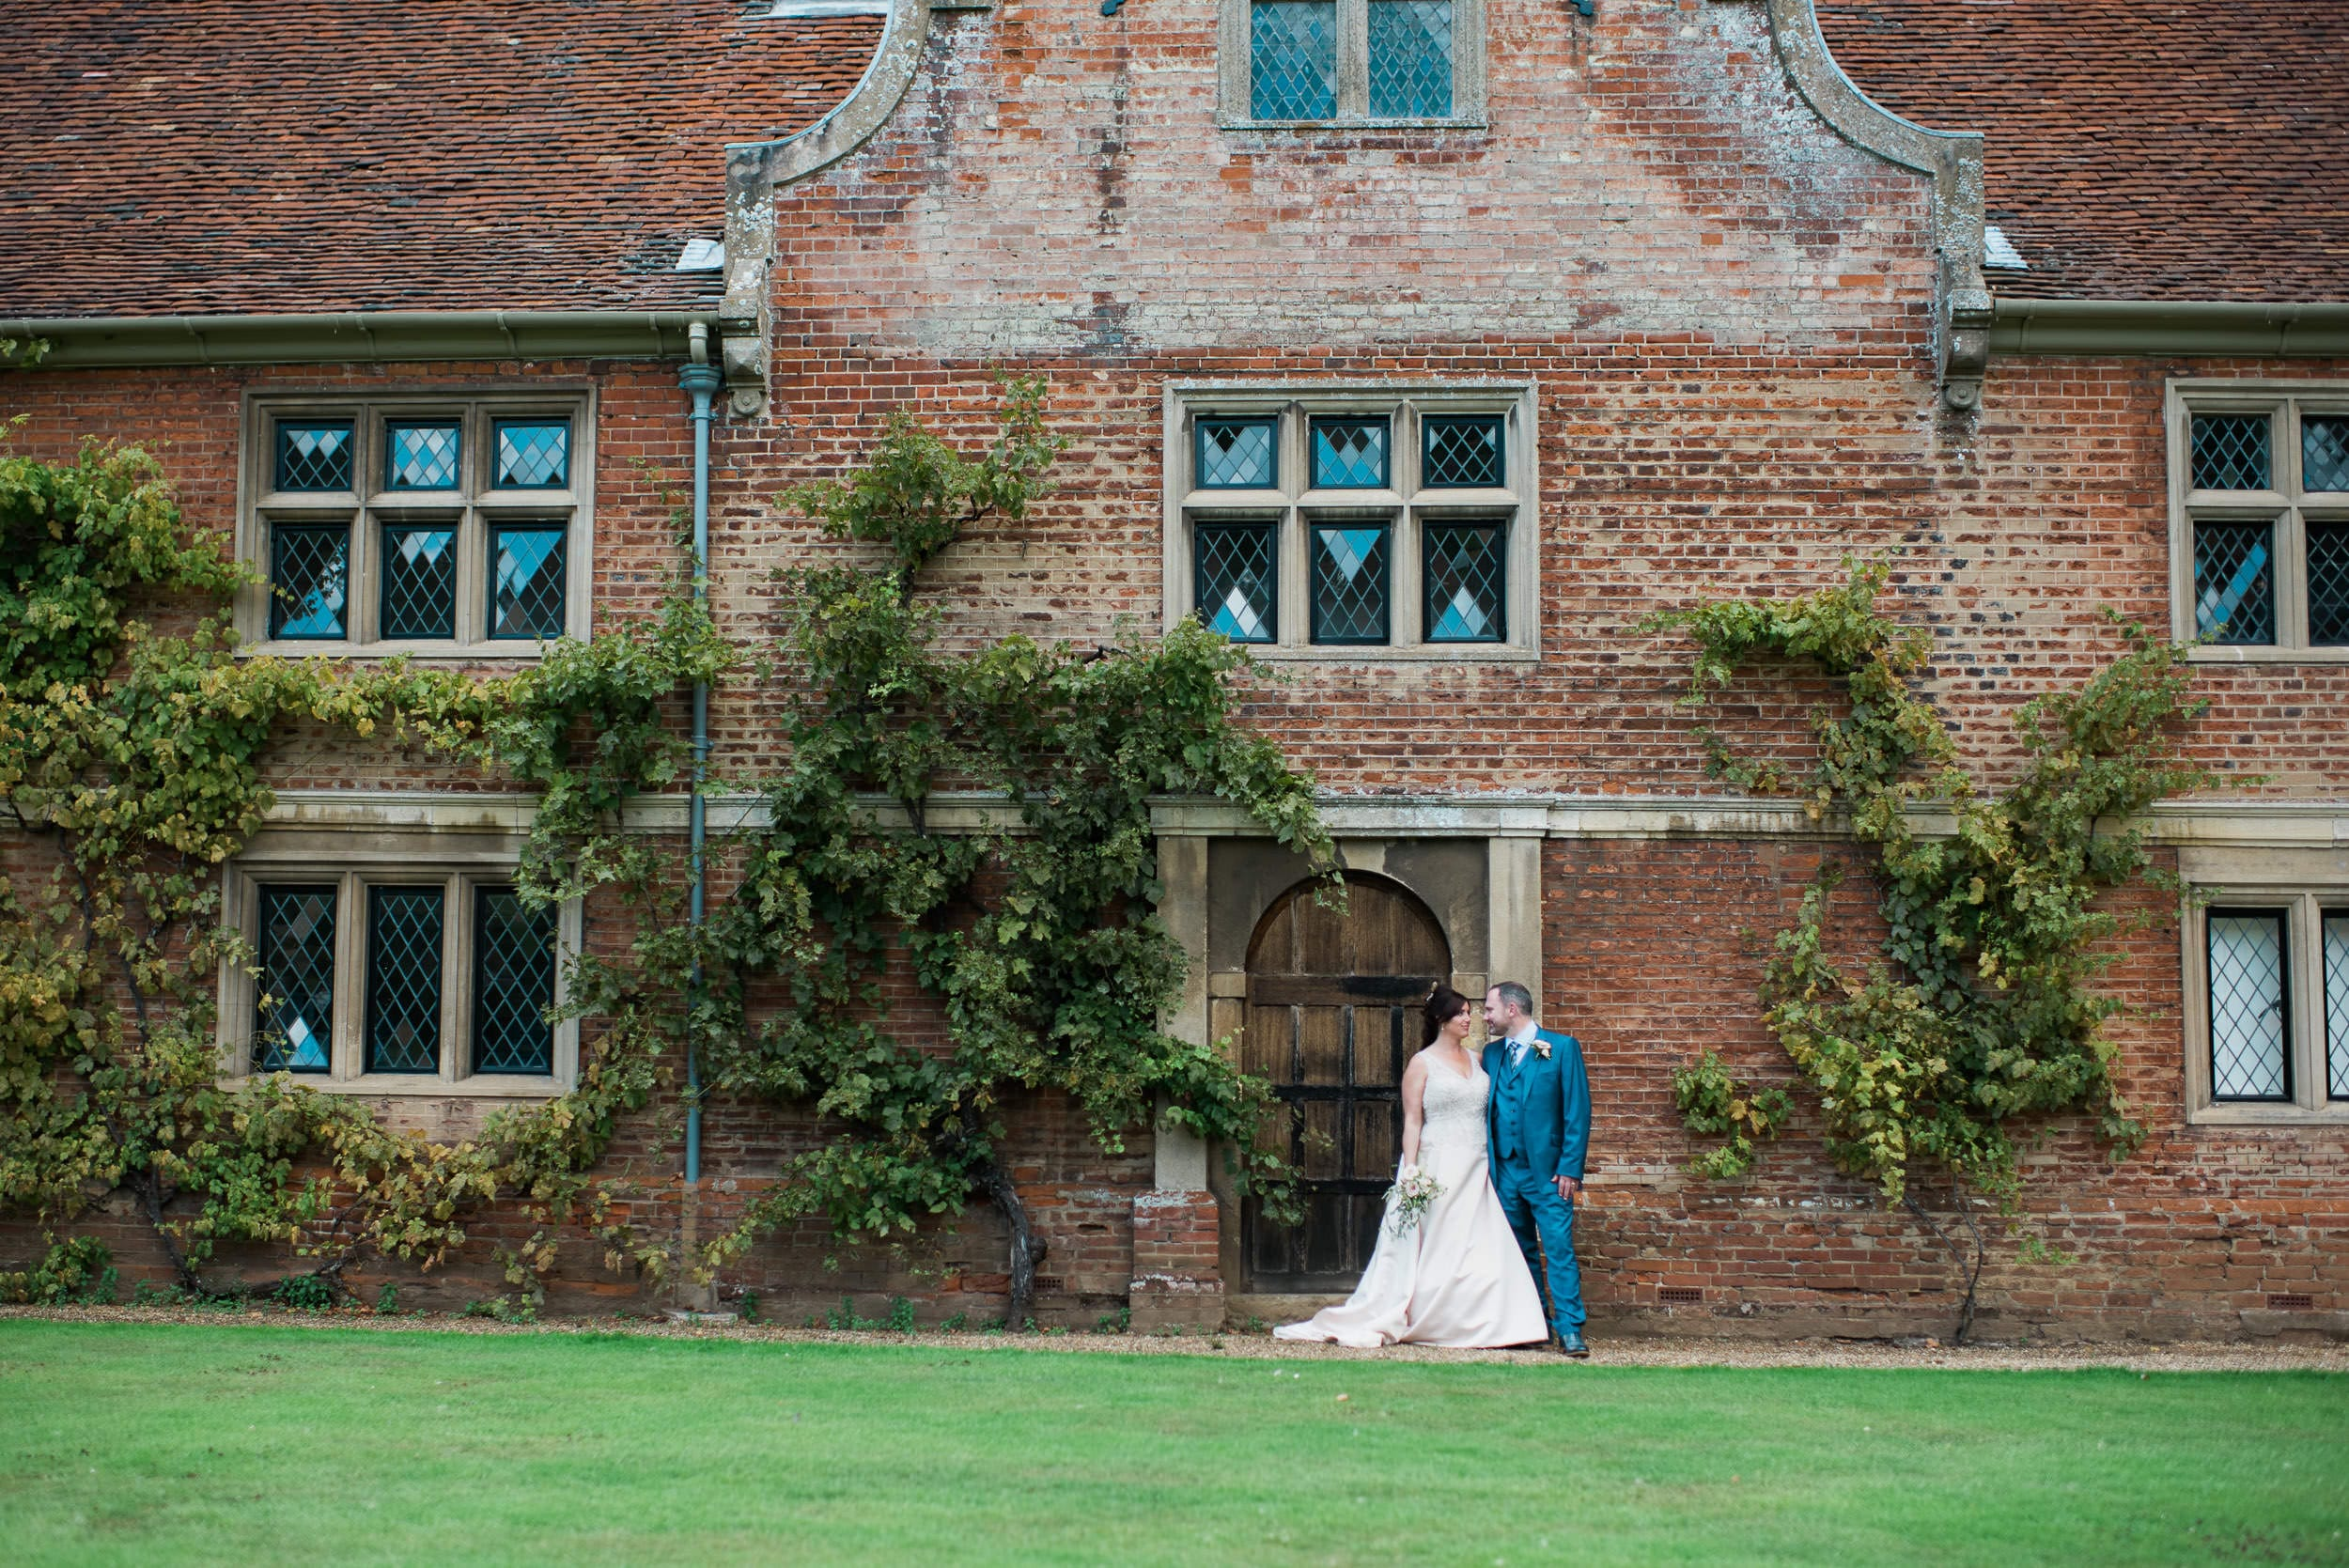 Suzy & Mike - Blickling Hall Wedding 27